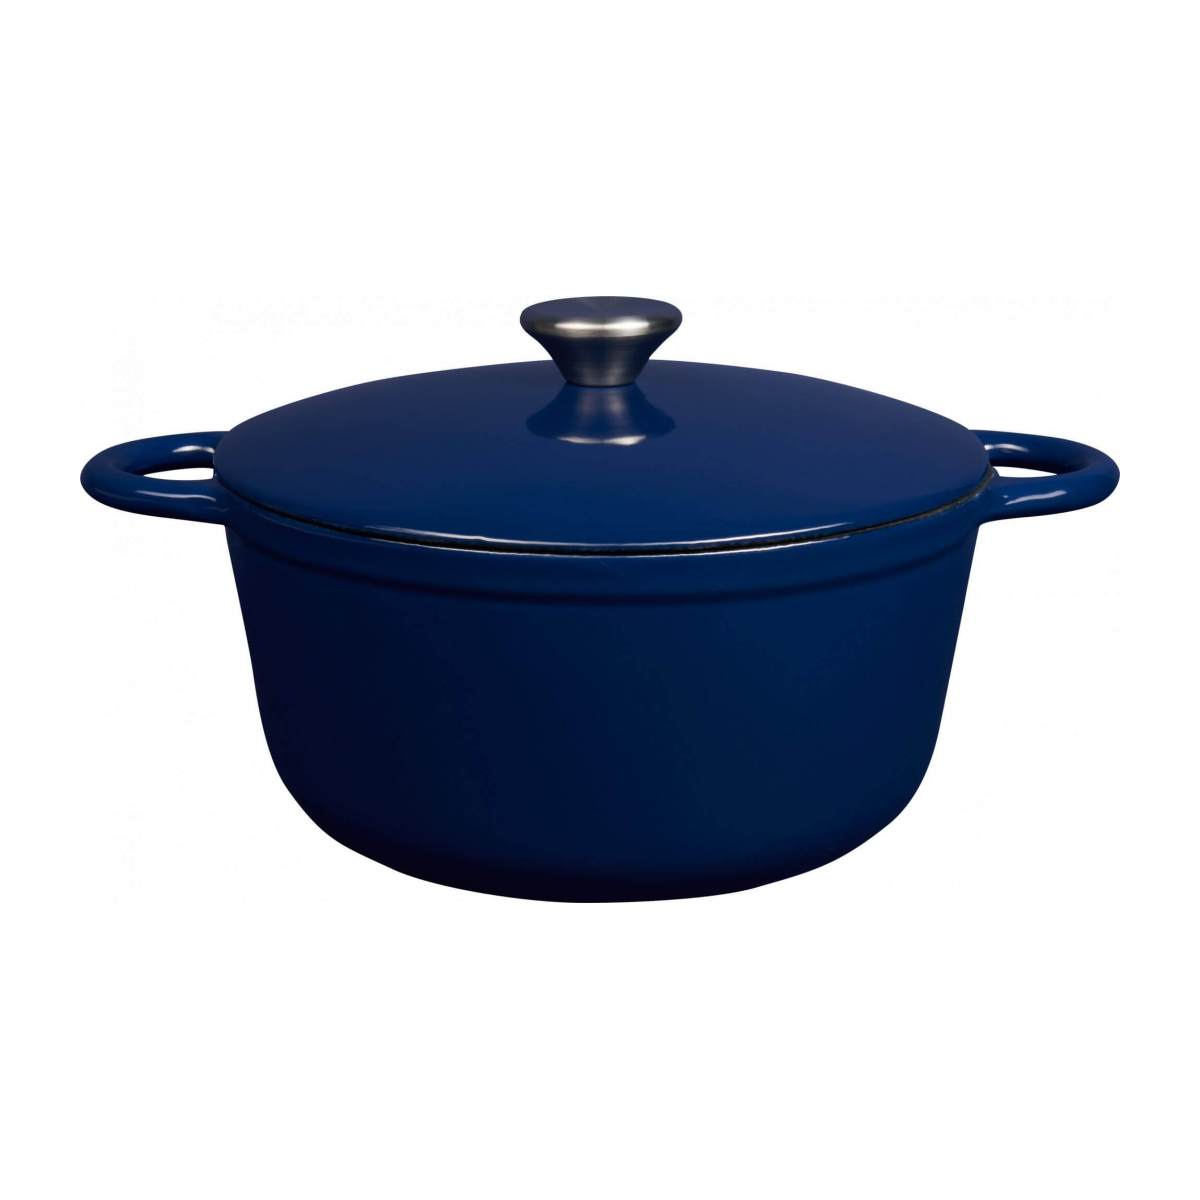 Cast iron cooker 23 cm, blue n°2